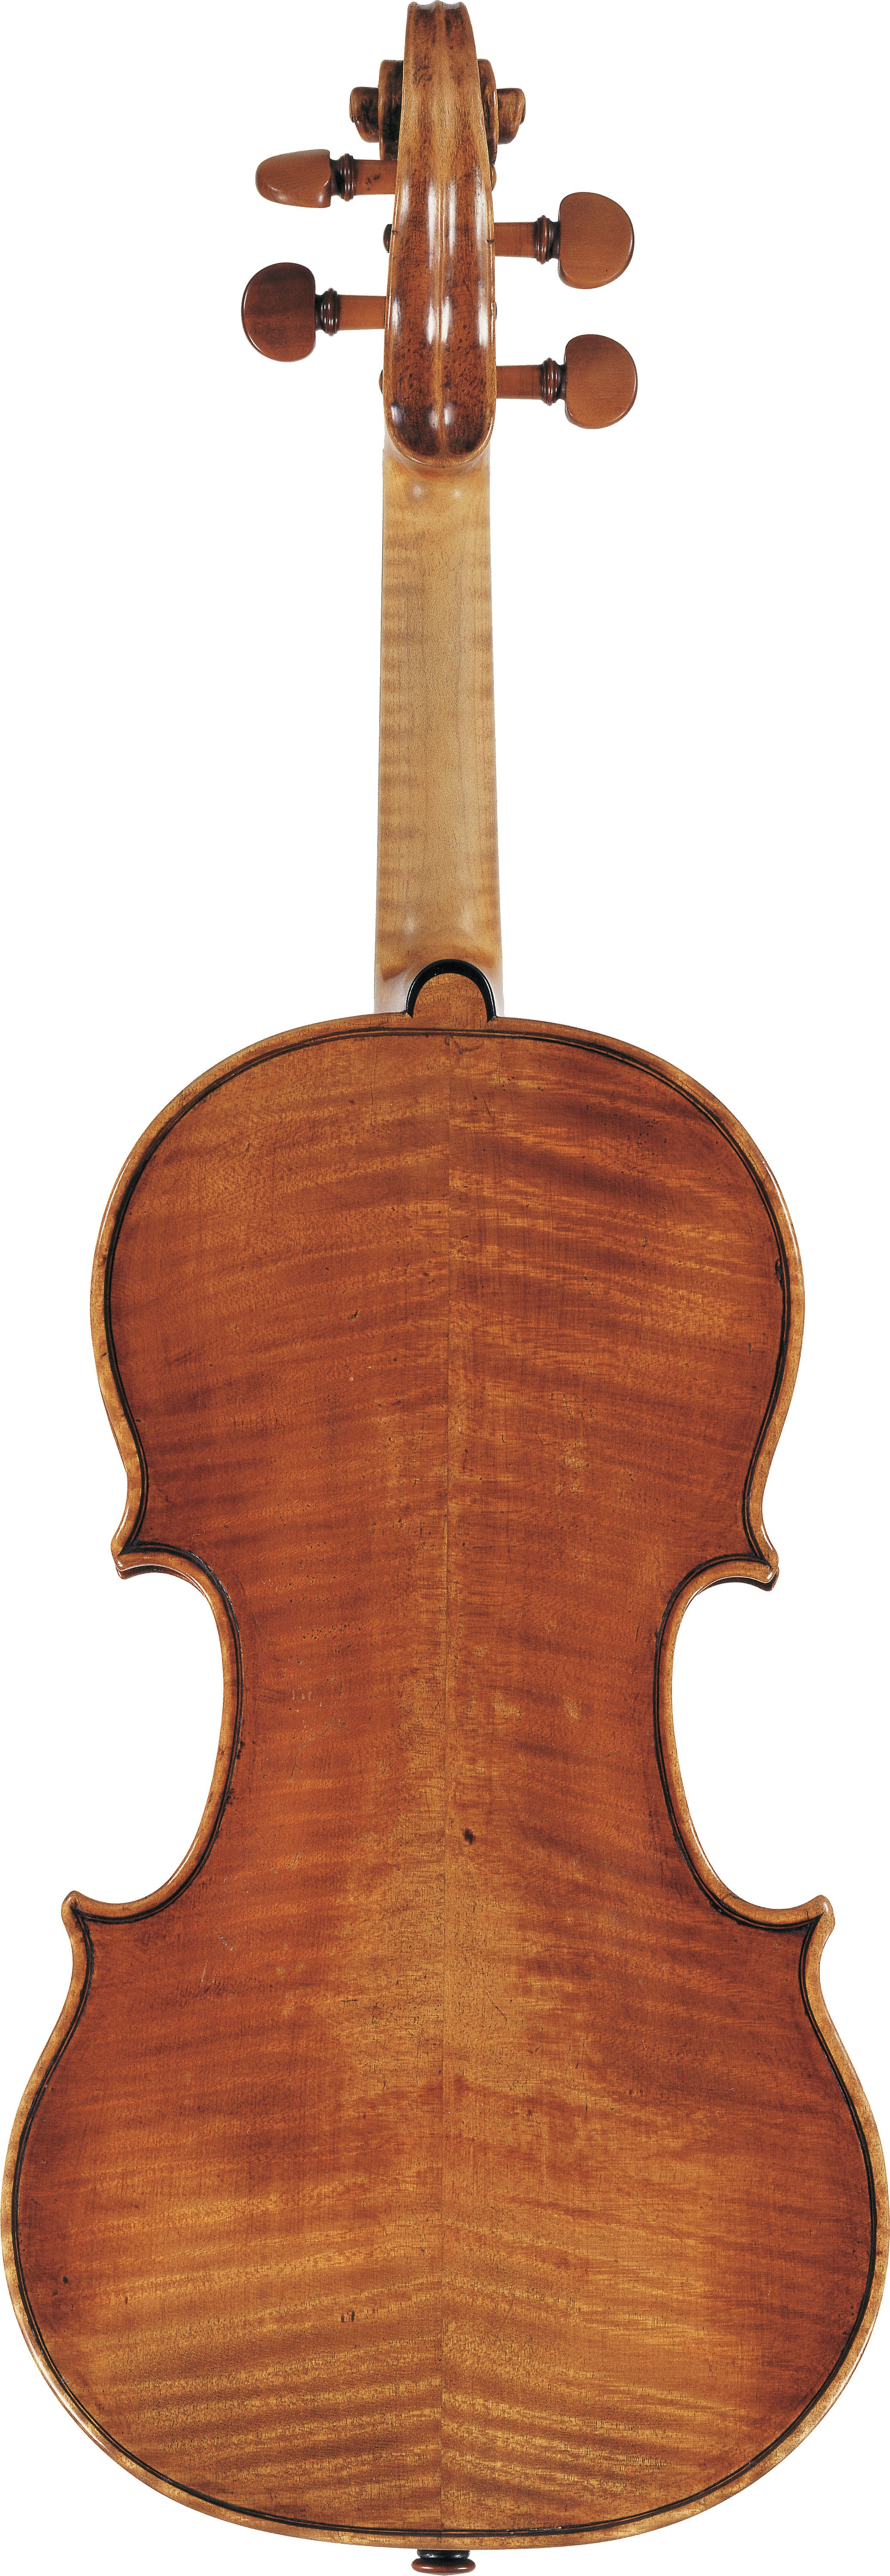 1703 Matteo Goffriller Violin from The Four Centuries Gallery